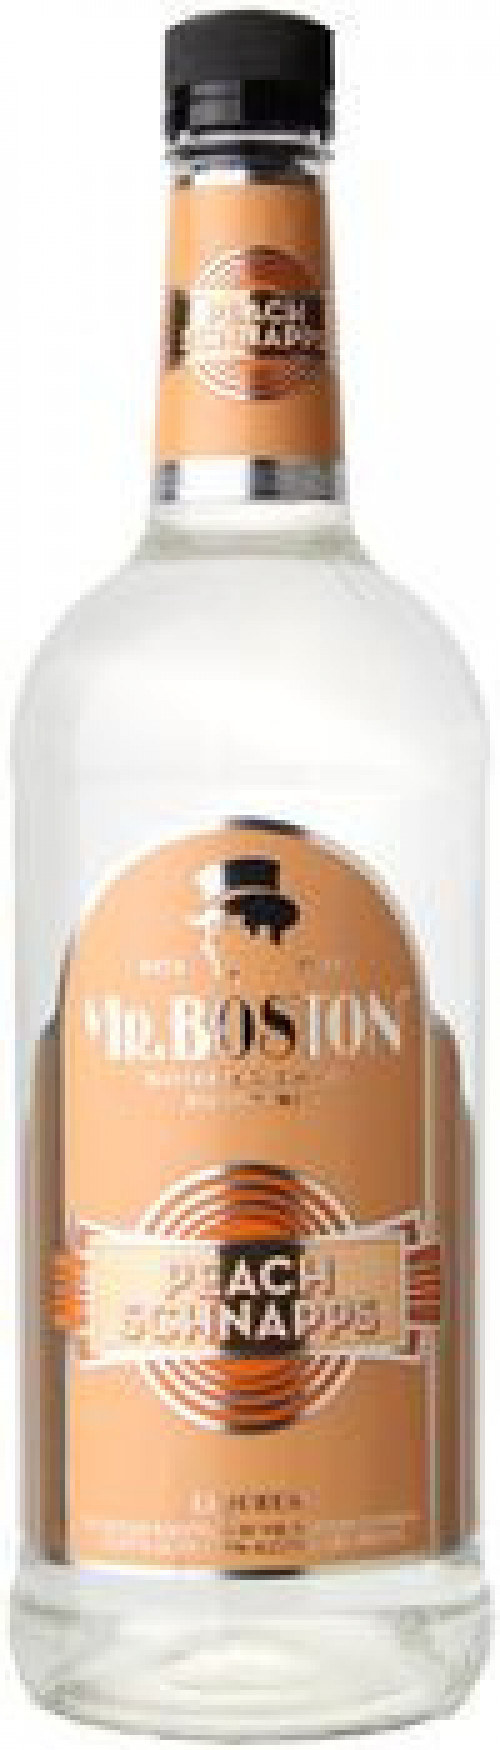 Mr Boston Peach Schnapps 1L